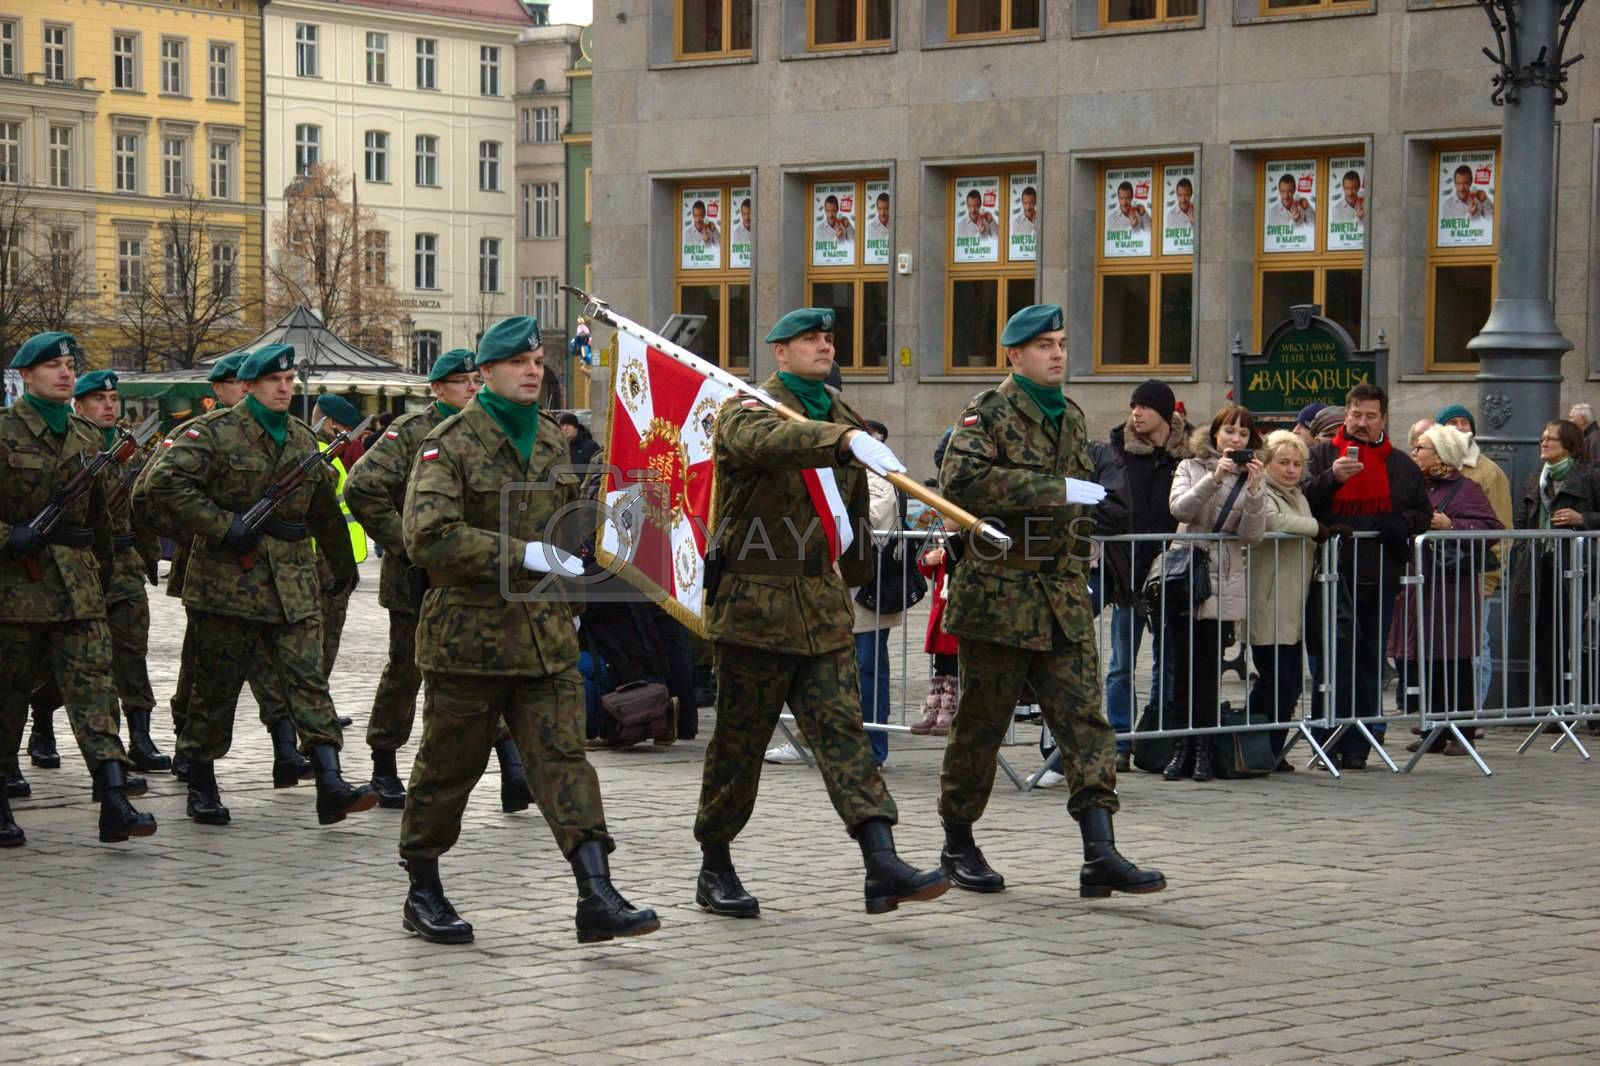 WROCLAW, POLAND - DECEMBER 2: Polish army, engineering training center for troops receives new army banner. Parade with new banner on December 2, 2011.